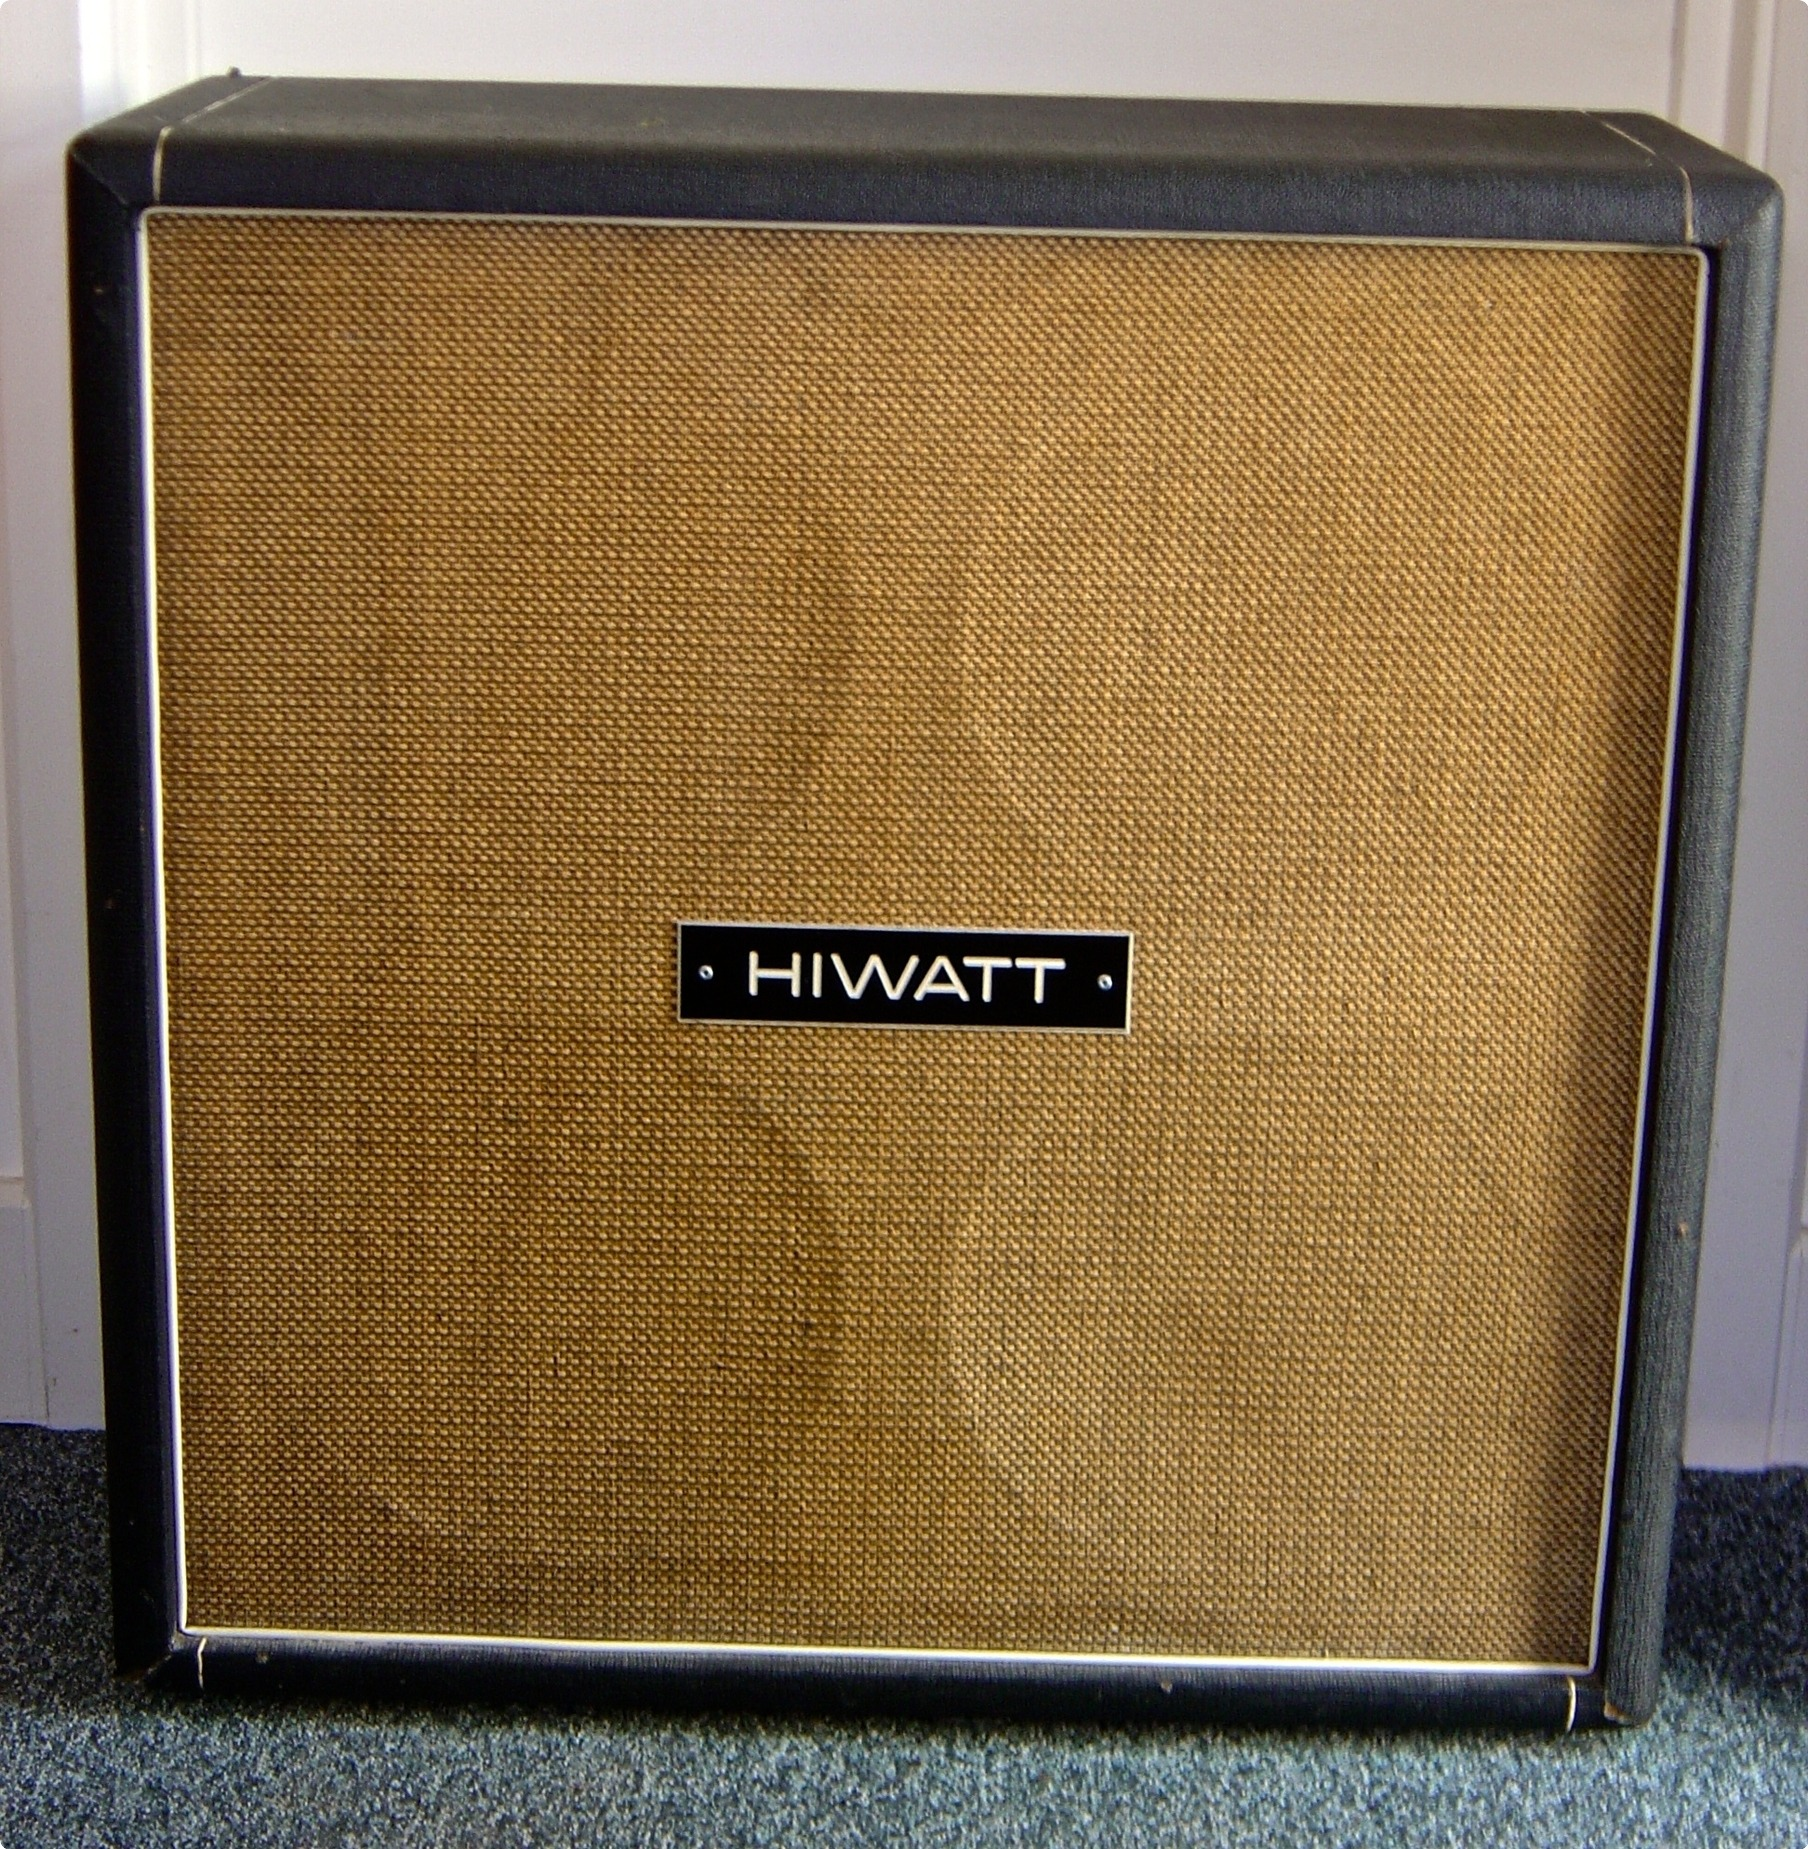 refinishing kitchen cabinet hiwatt 4x12 cabinet 1971 amp for harris hire 1807